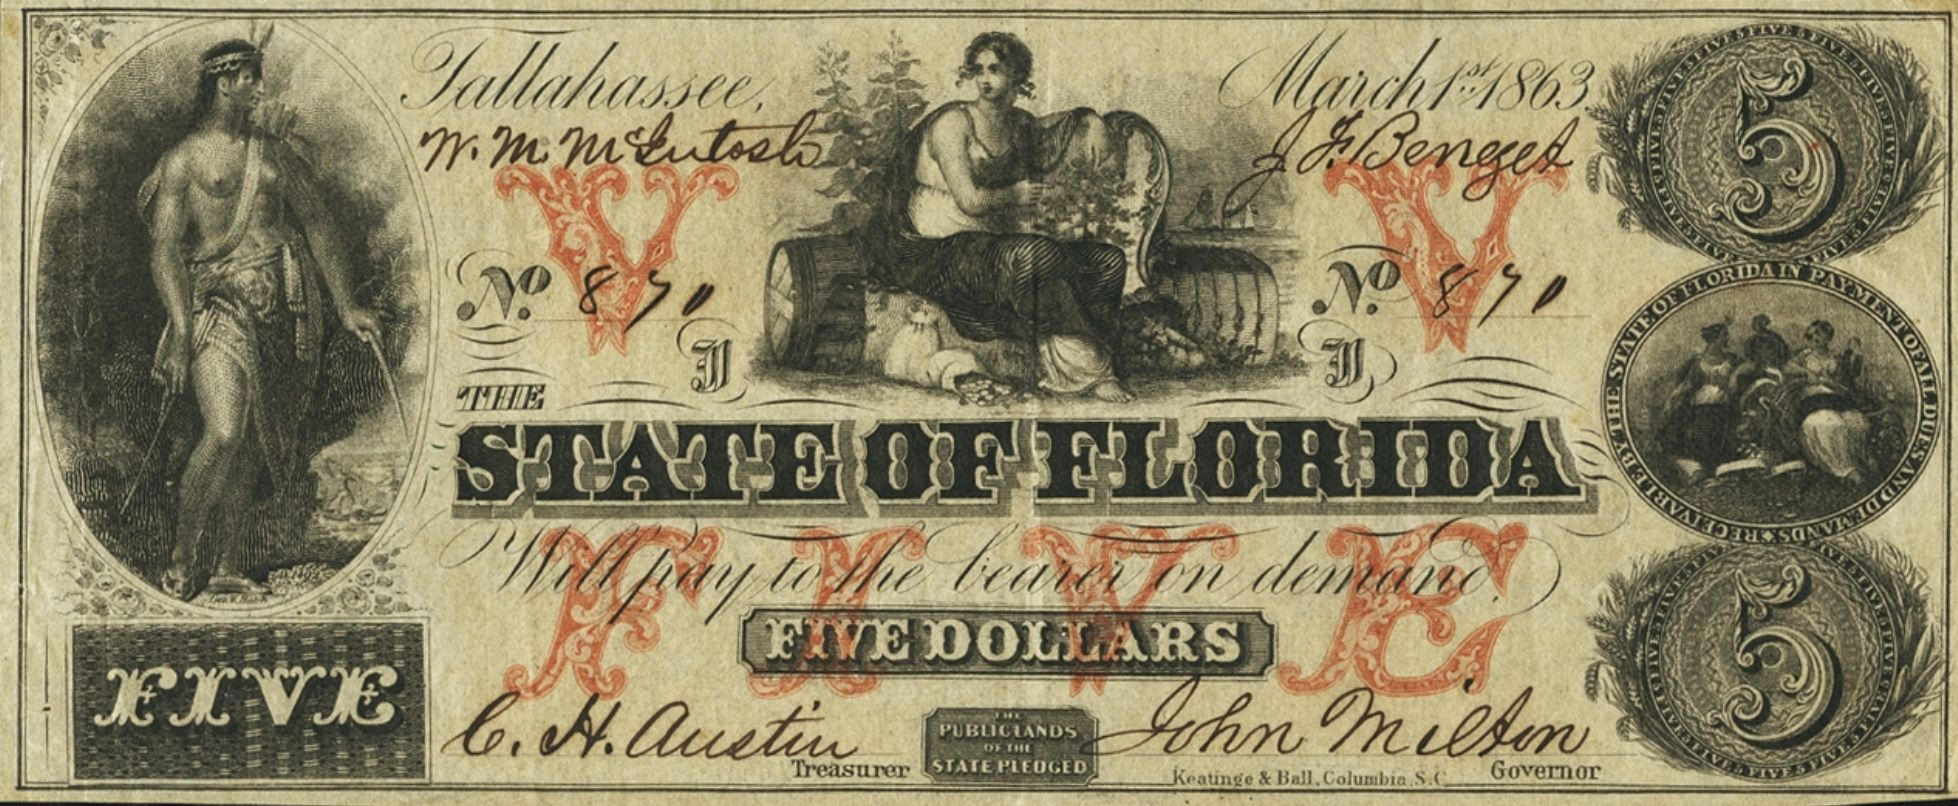 Pin By Richard Wald On Obsolete Currency From Florida In